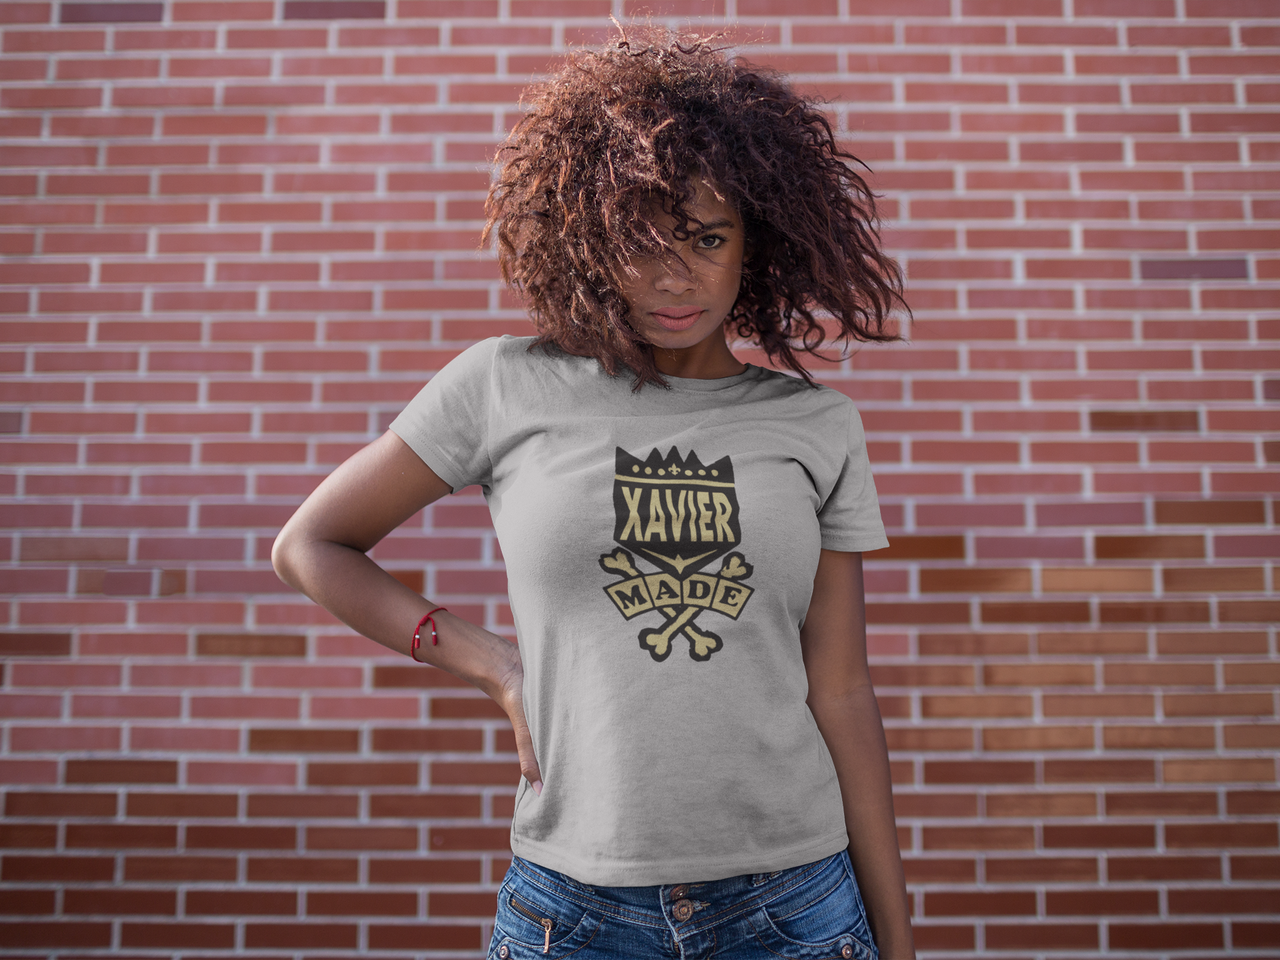 black-girl-with-wind-in-her-hair-wearing-a-t-shirt-mockup-against-a-bricks-wall-a15814.png